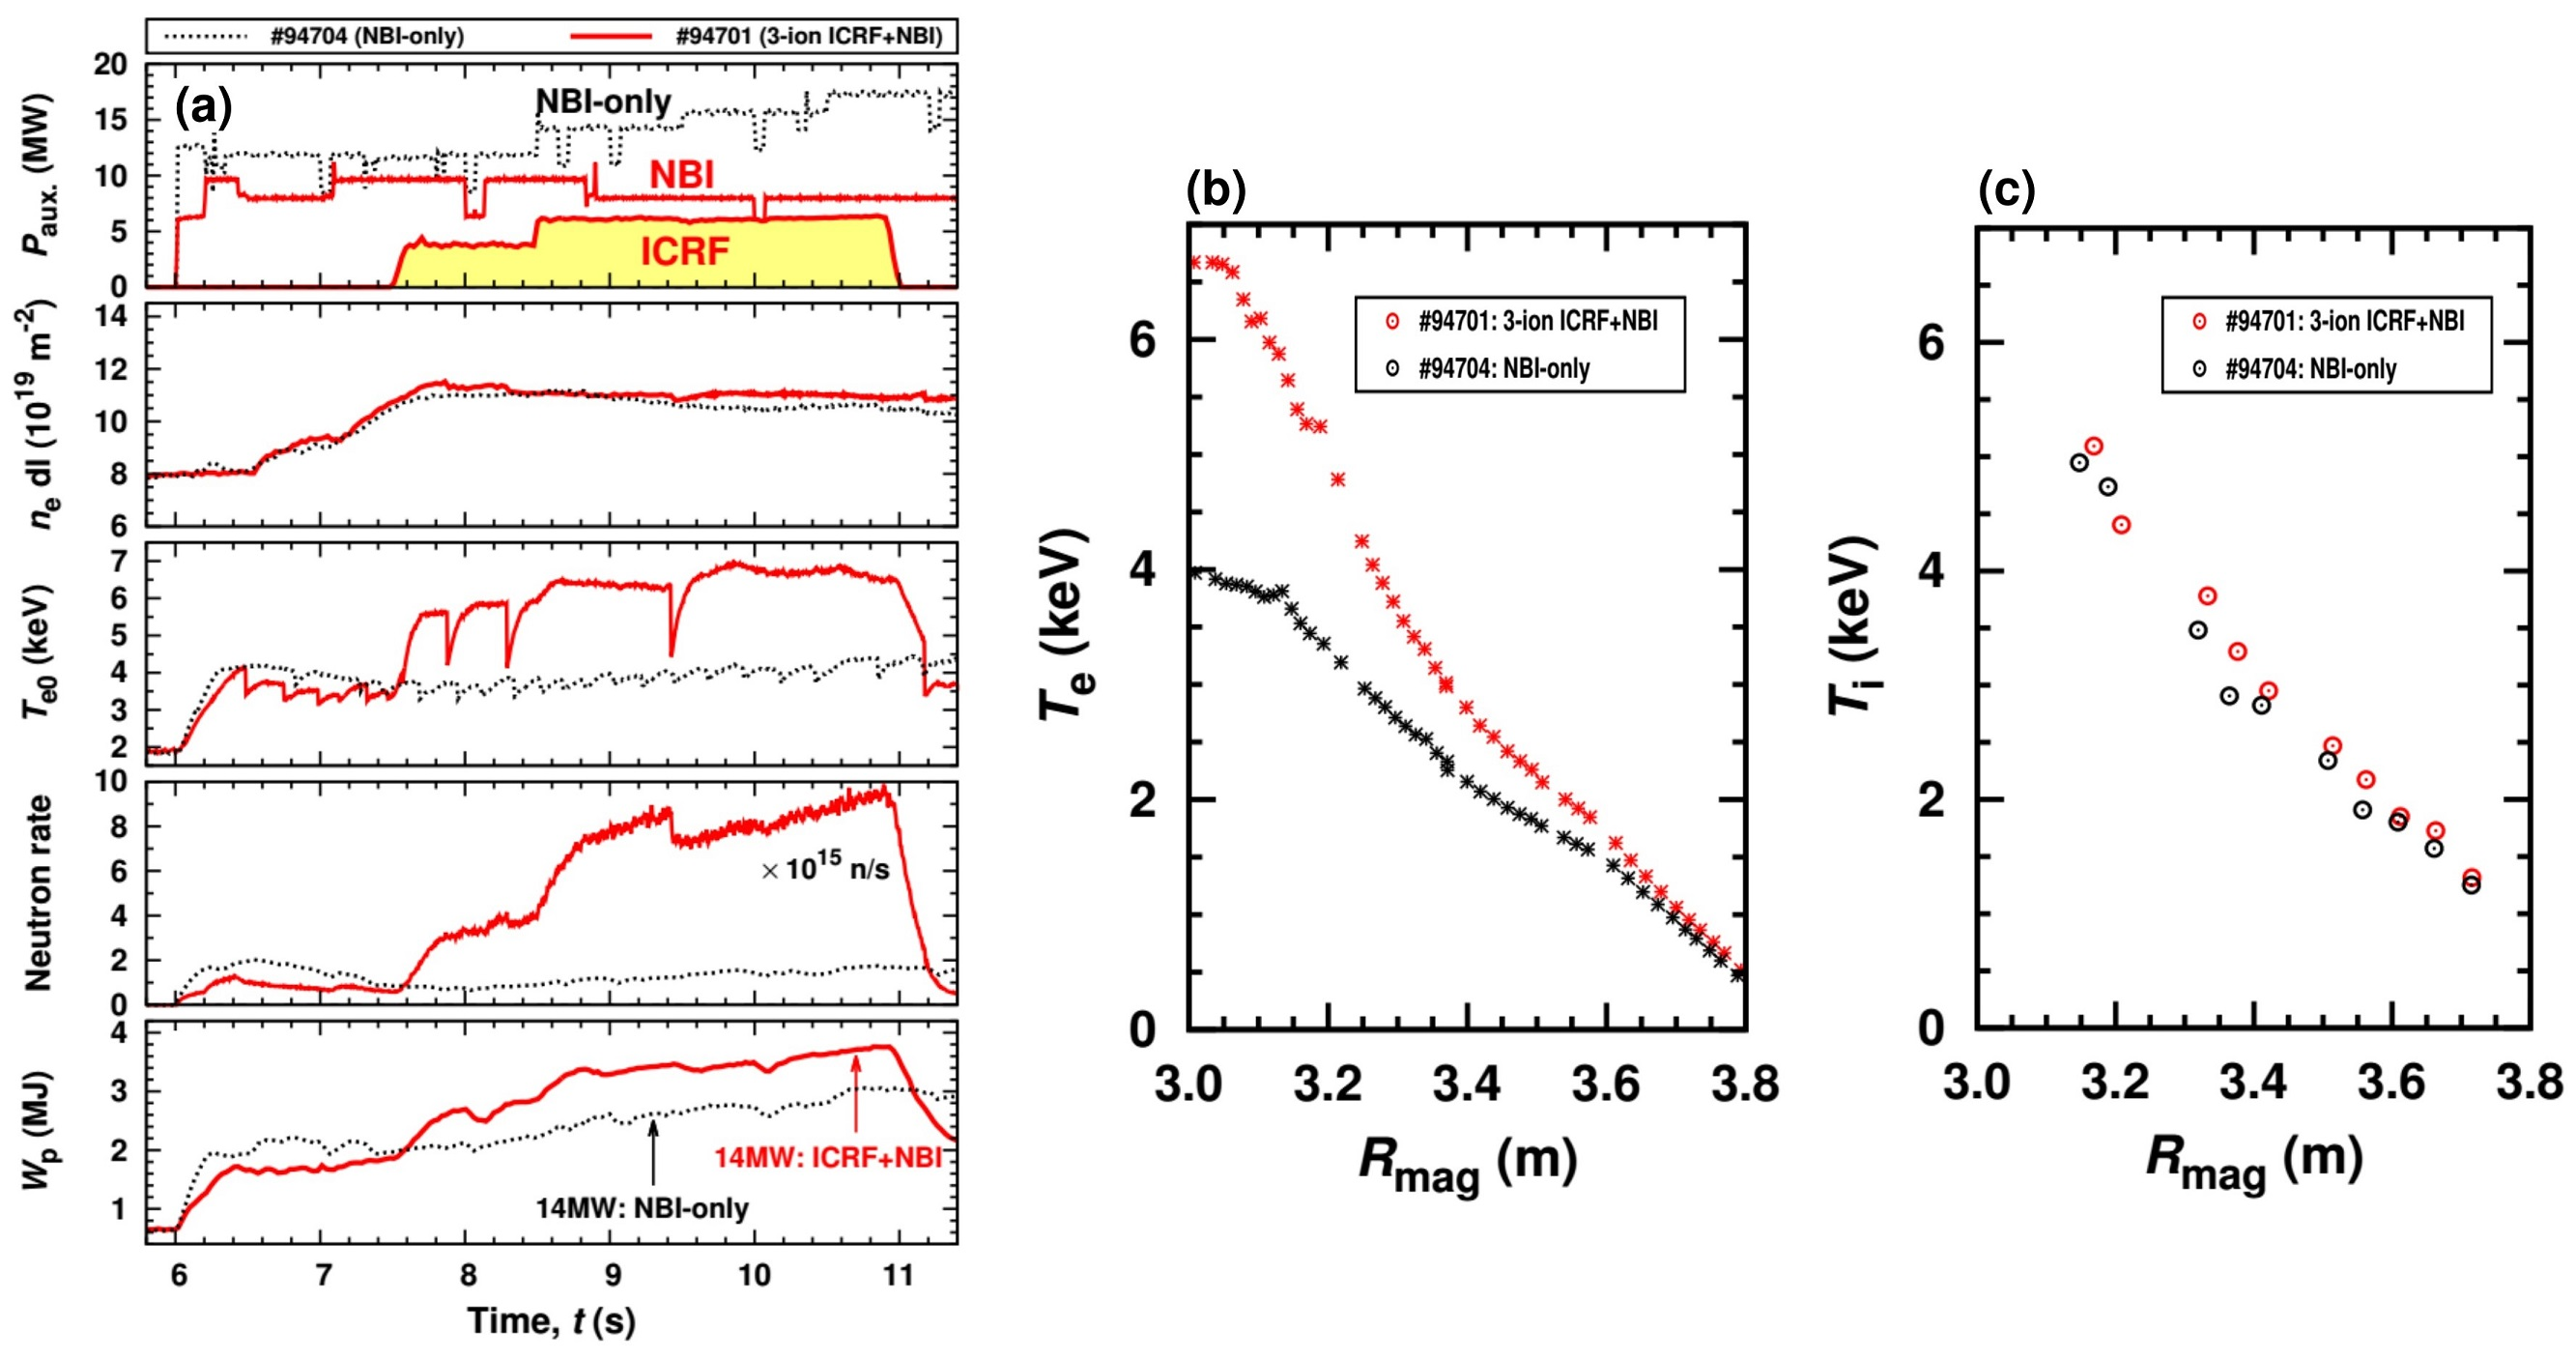 (a) Overview of JET pulse #94701, in which the 3-ion ICRF scheme D-(D$_{\rm NBI}$)-$^3$He was applied in mixed D-$^3$He plasma (3.7T/2.5MA, $n_{e0} \approx 6 \times 10^{19}\,{\rm m}^{-3}$, $n(^{3}{\rm He})/n_{e} \approx 20-25\%$). The heating conditions in the plasma core mimic the conditions of D-T plasmas in ITER, characterized by dominant fast-ion electron heating. The dotted black lines show an overview of JET pulse #94704 with an NBI-only heating (dominant ion heating in the core) at the same operational conditions as in pulse #94701. (b) and (c) Comparison of $T_{e}$ and $T_{i}$ profiles for pulses #94701 and #94704 at the same total auxiliary heating power, $P_{\rm aux.} = 14\,{\rm MW}$ and plasma density, $n_{e0} \approx 6 \times 10^{19}\,{\rm m}^{-3}$.